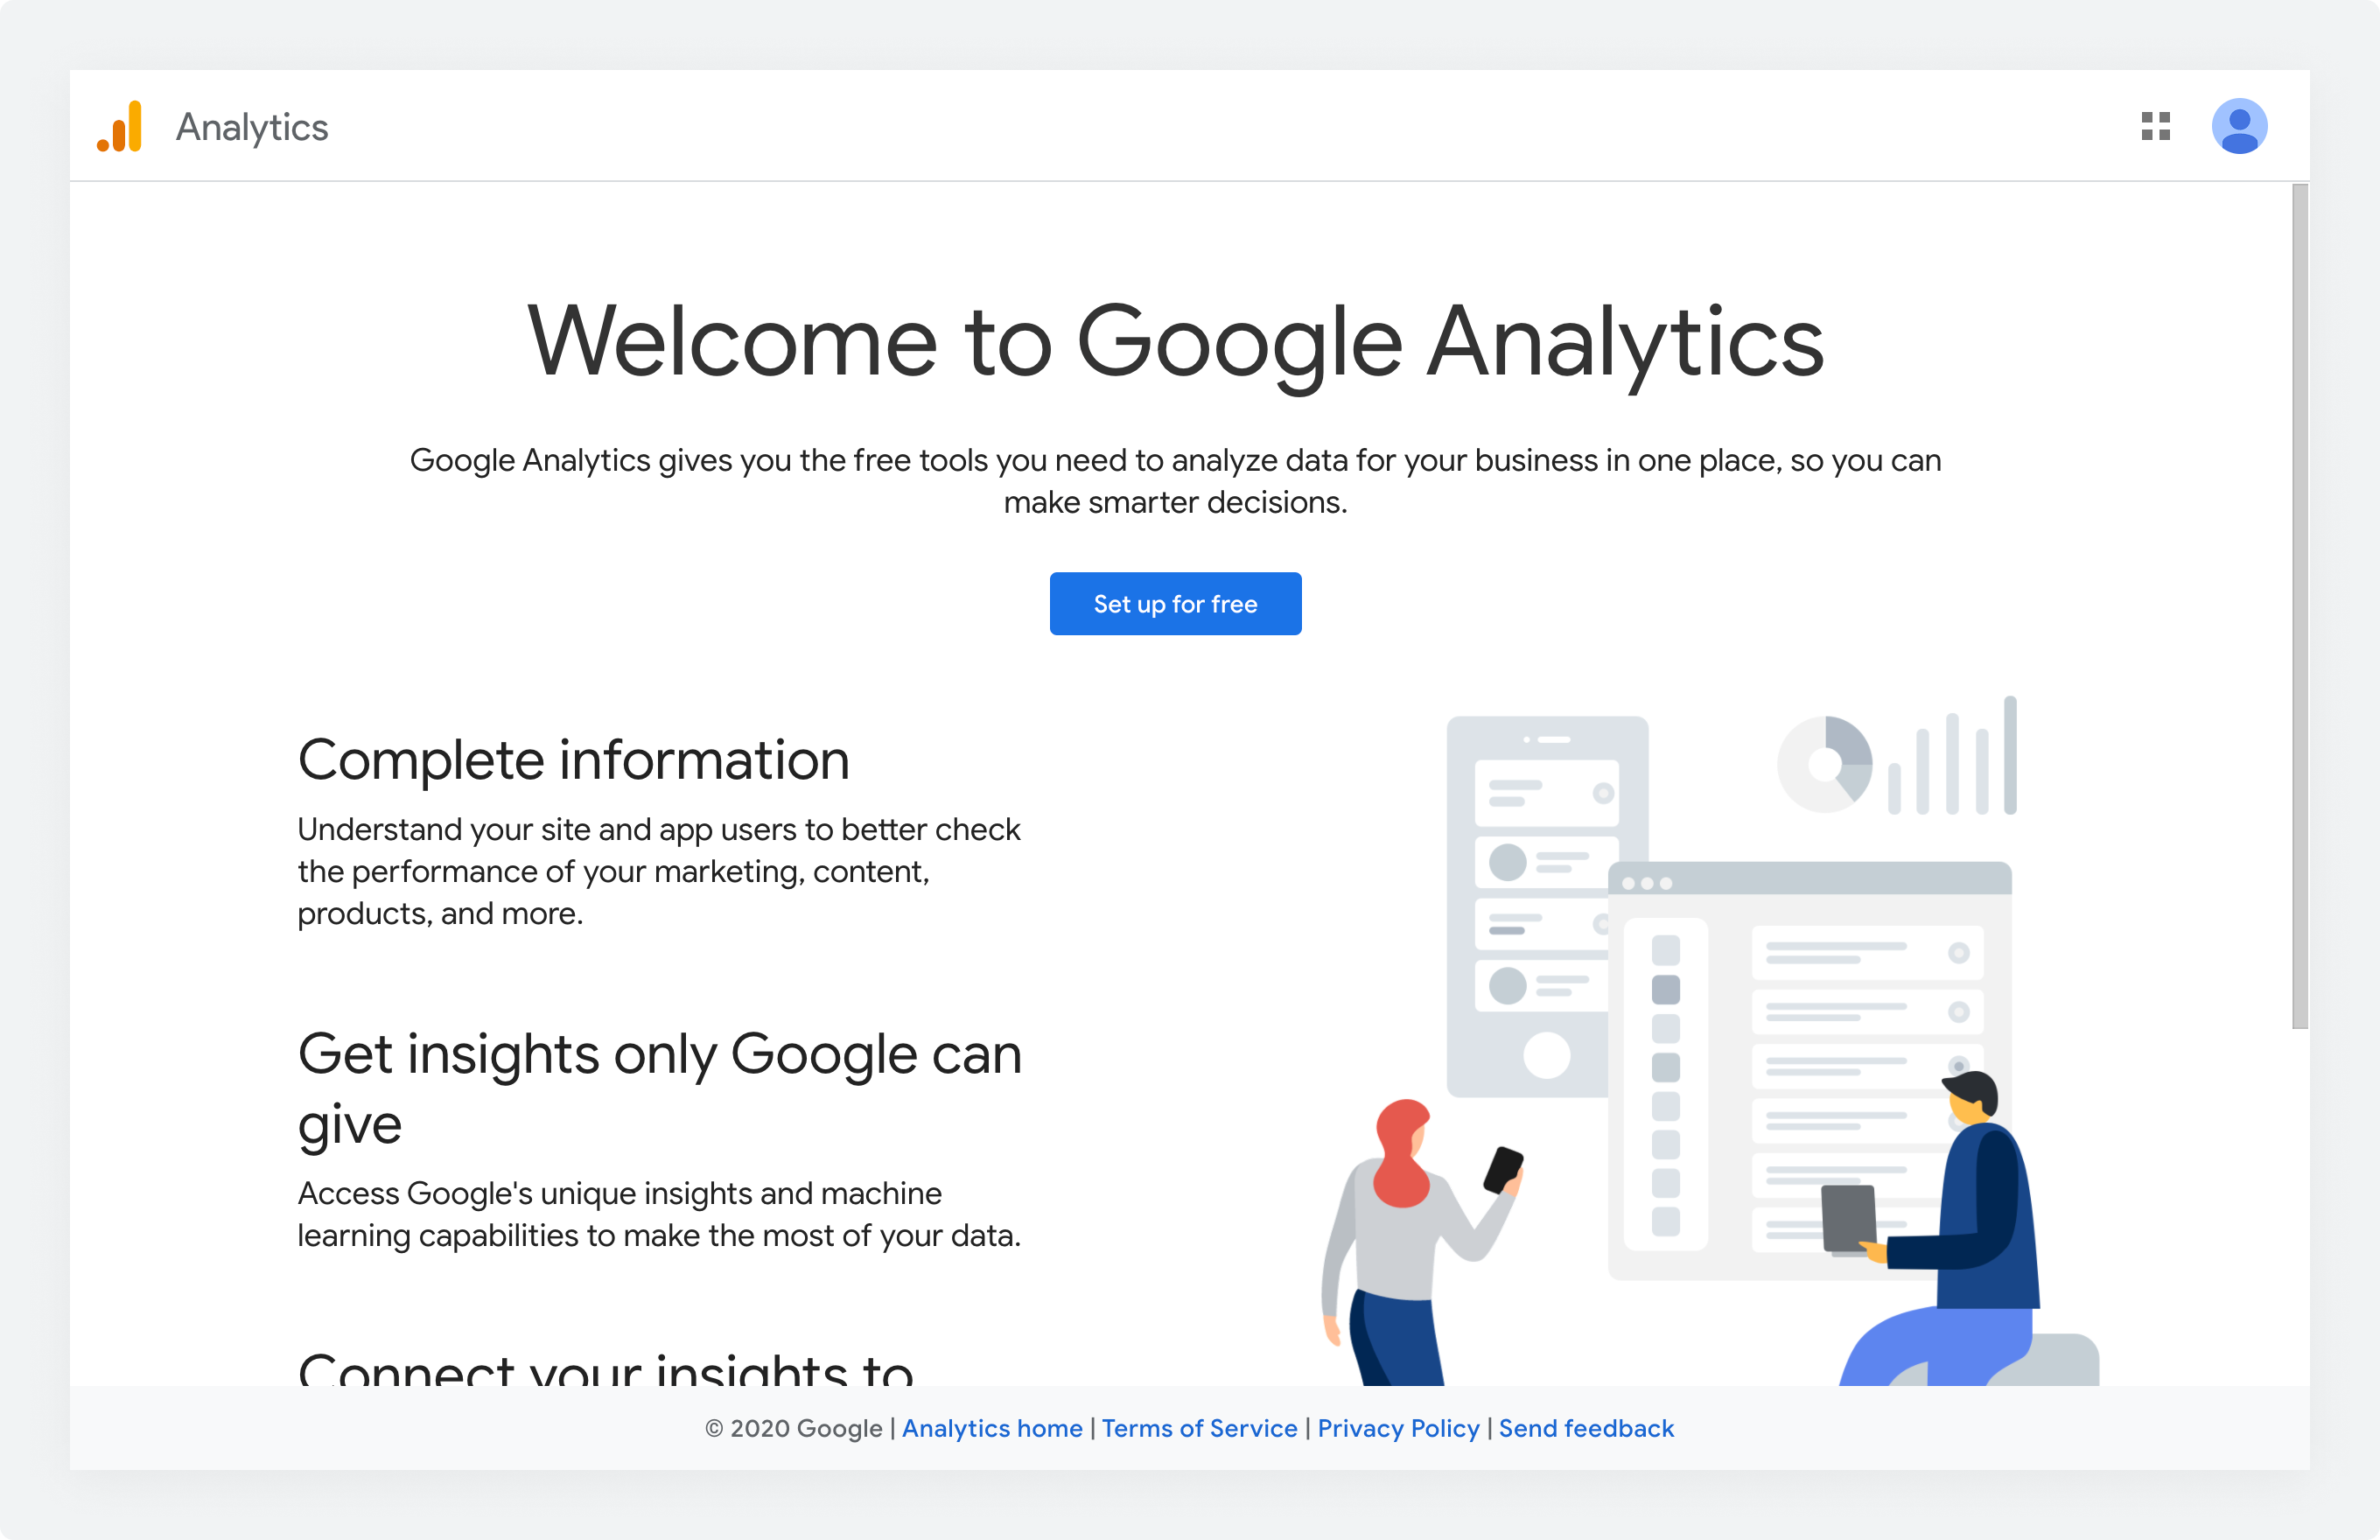 The Google Analytics home page